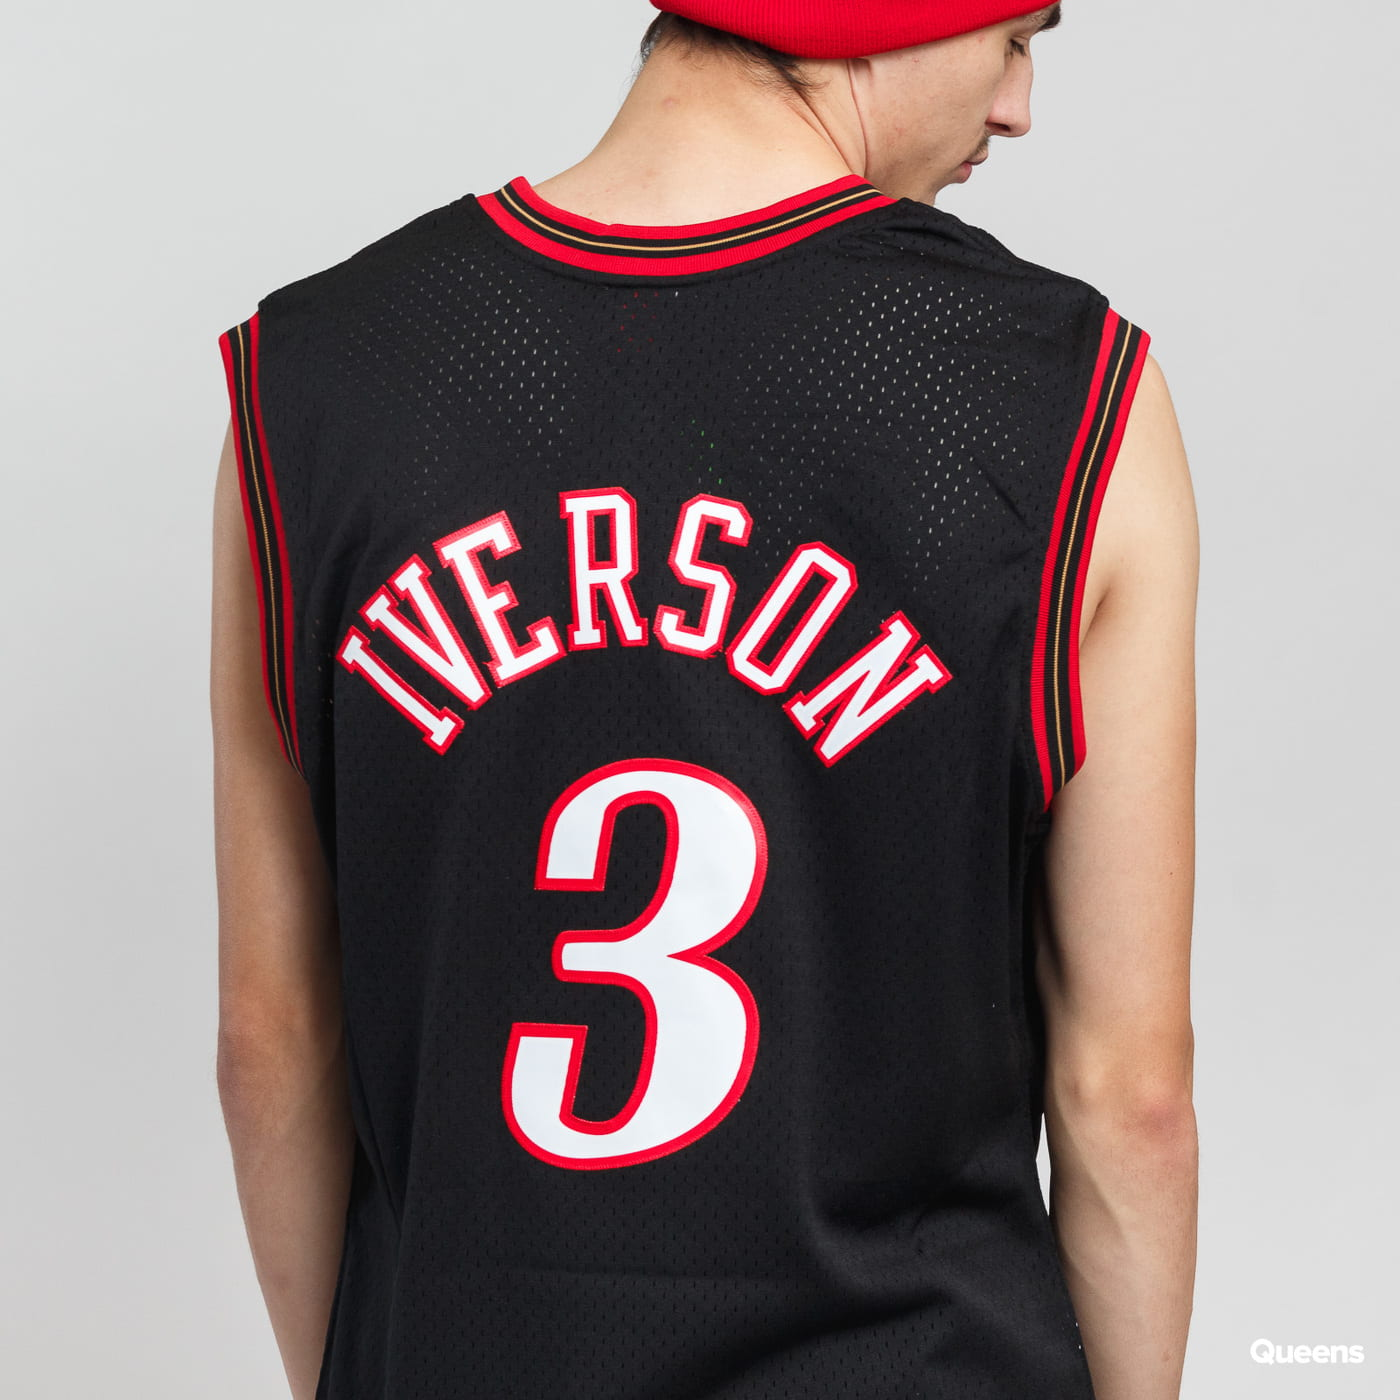 Mitchell & Ness NBA Swingman Jersey Philadelphia 76ers black